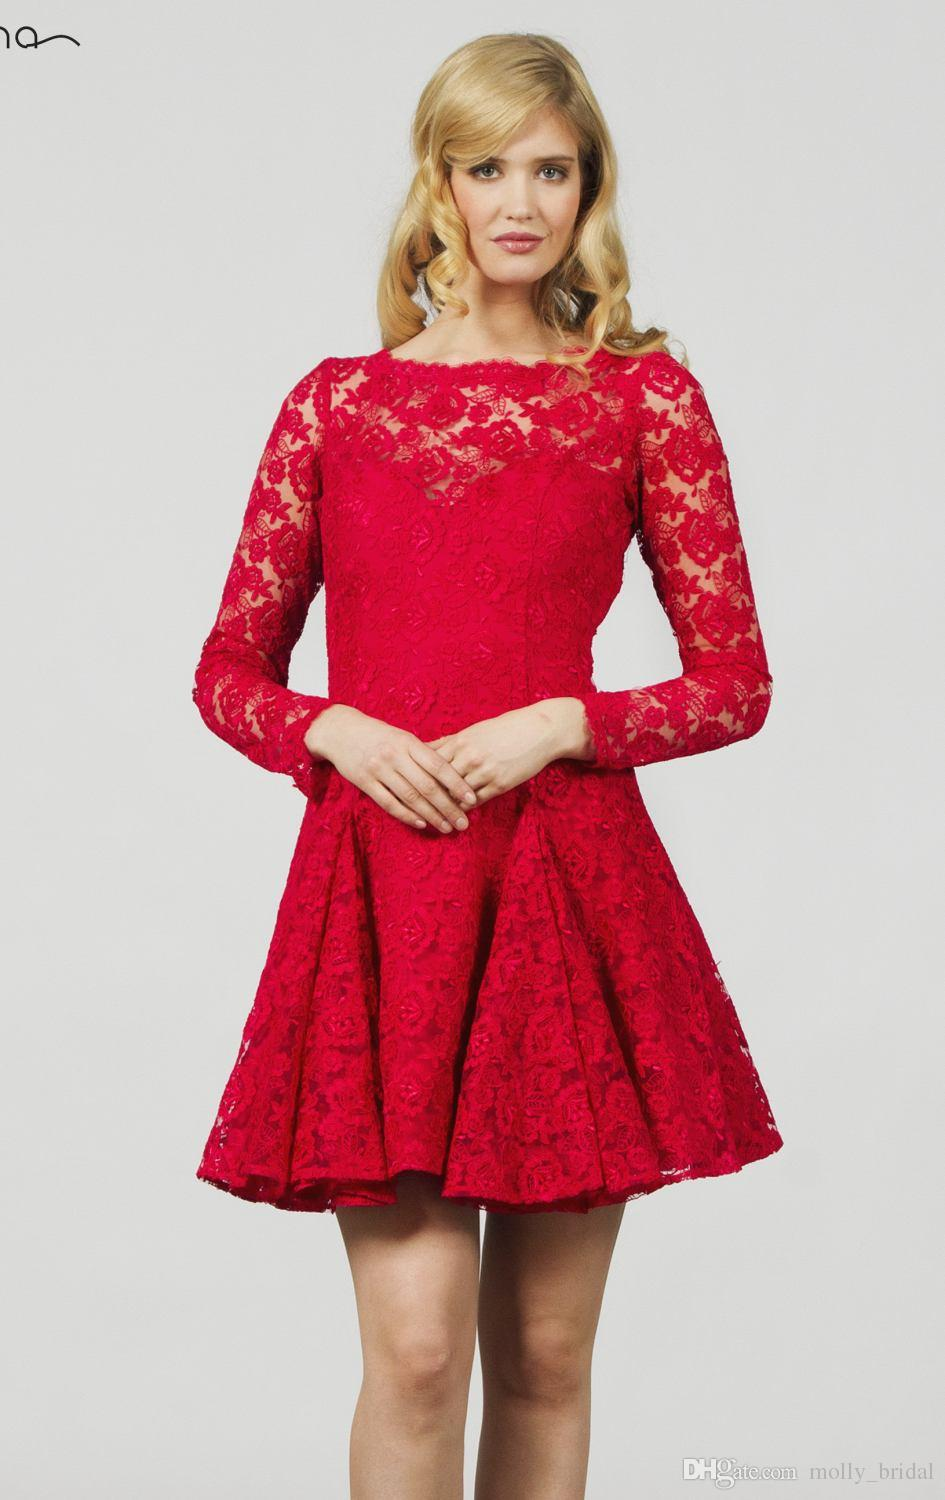 New 2017 Red Lace Long Sleeve Mini Short Prom Dresses Sexy backless A Line High Collar Formal Pageant Party Dress For Gala Gowns